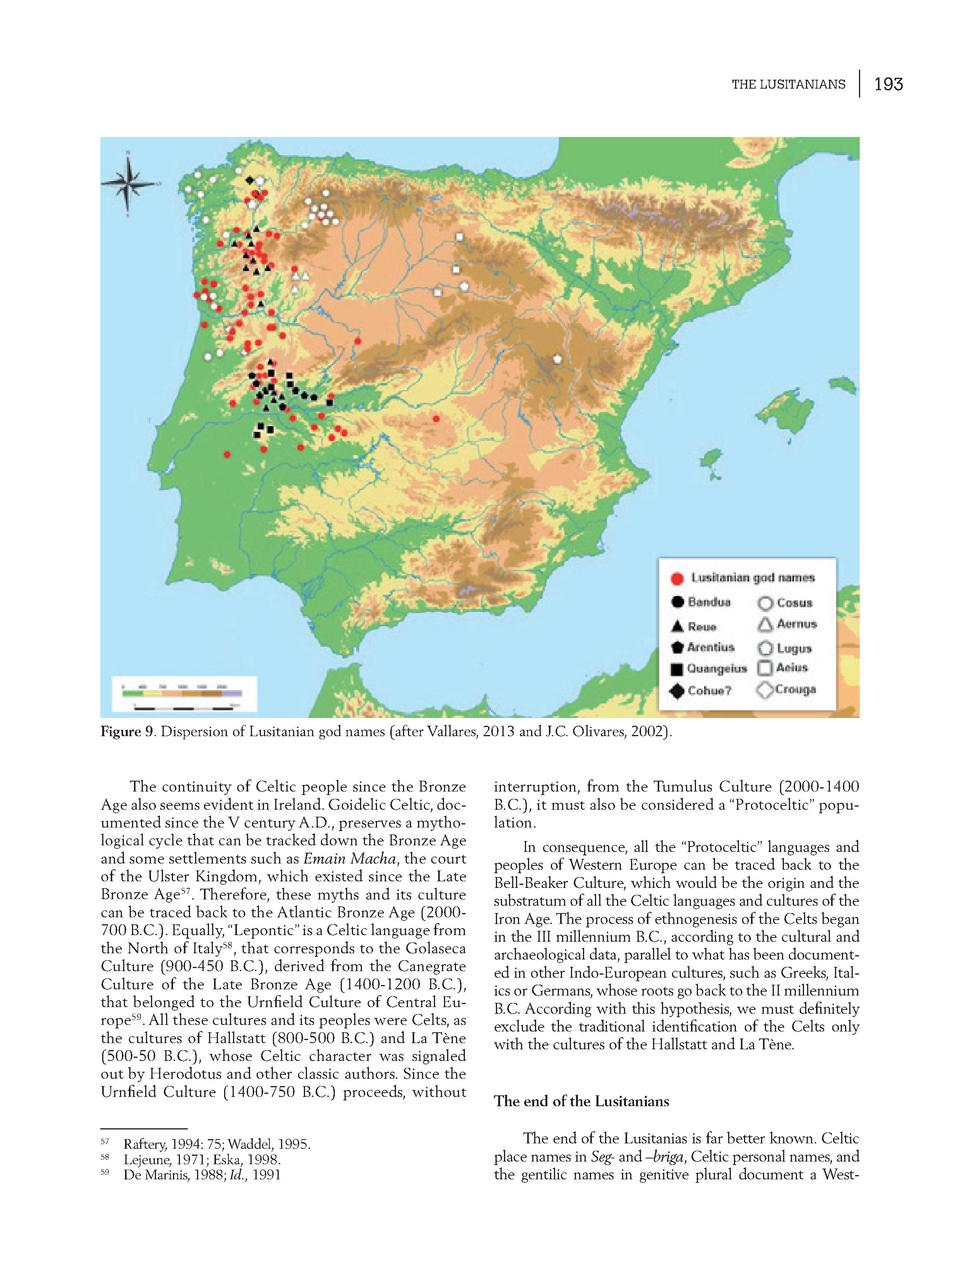 THE LUSITANIANS  Figure 9. Dispersion of Lusitanian god names  after Vallares, 2013 and J.C. Olivares, 2002 .  The continu...